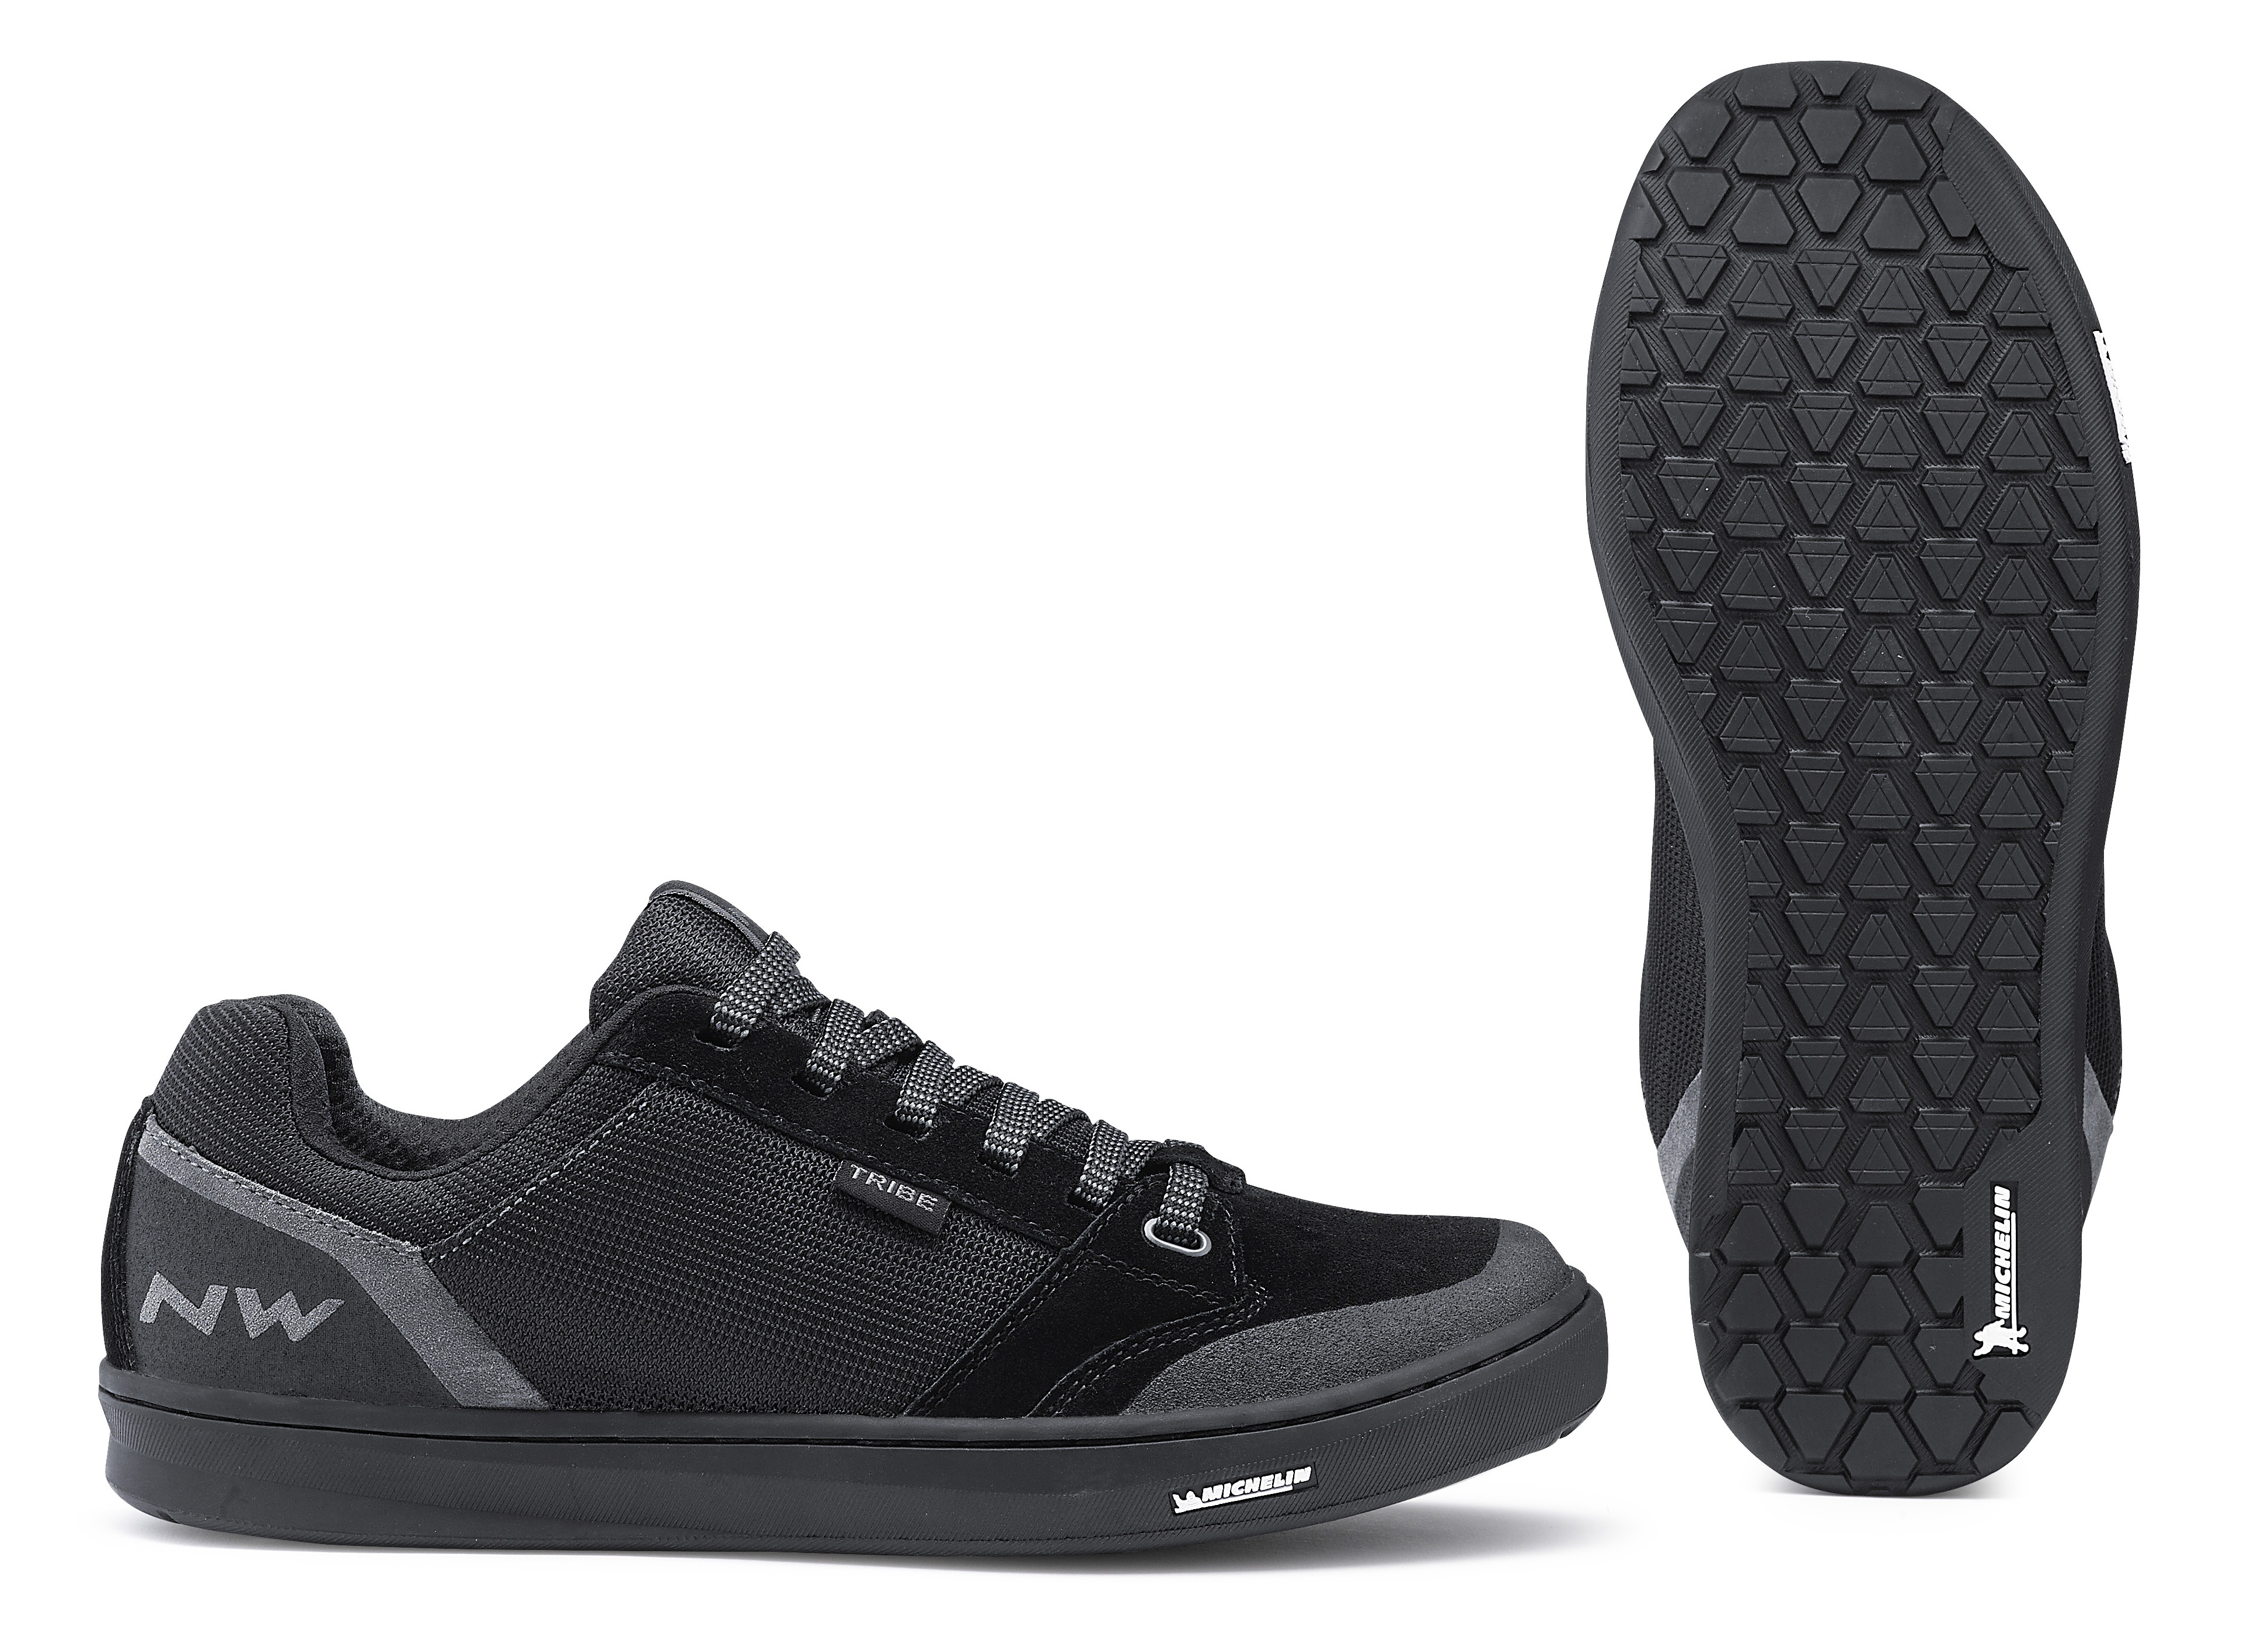 Best price Northwave Bike shoes Male Tribe   Italy2us.com